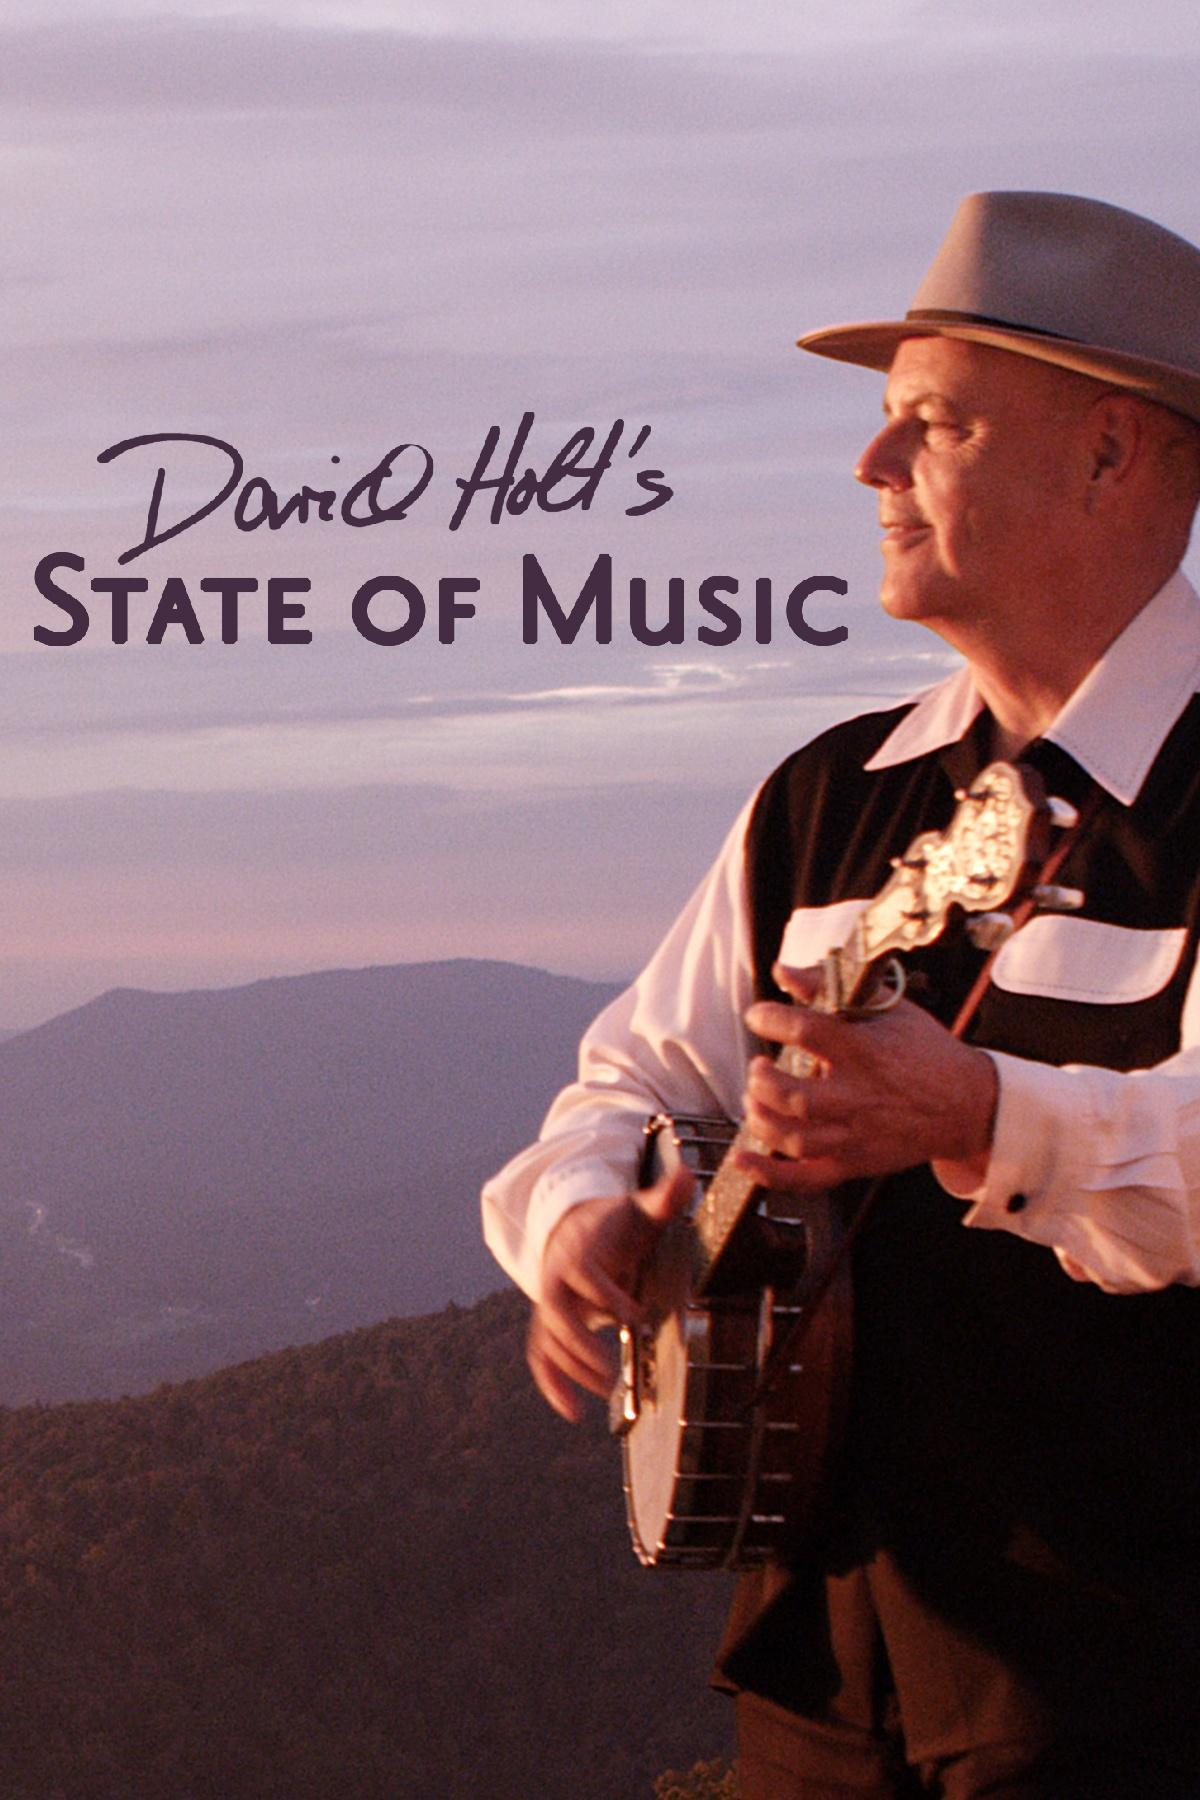 David Holt's State of Music